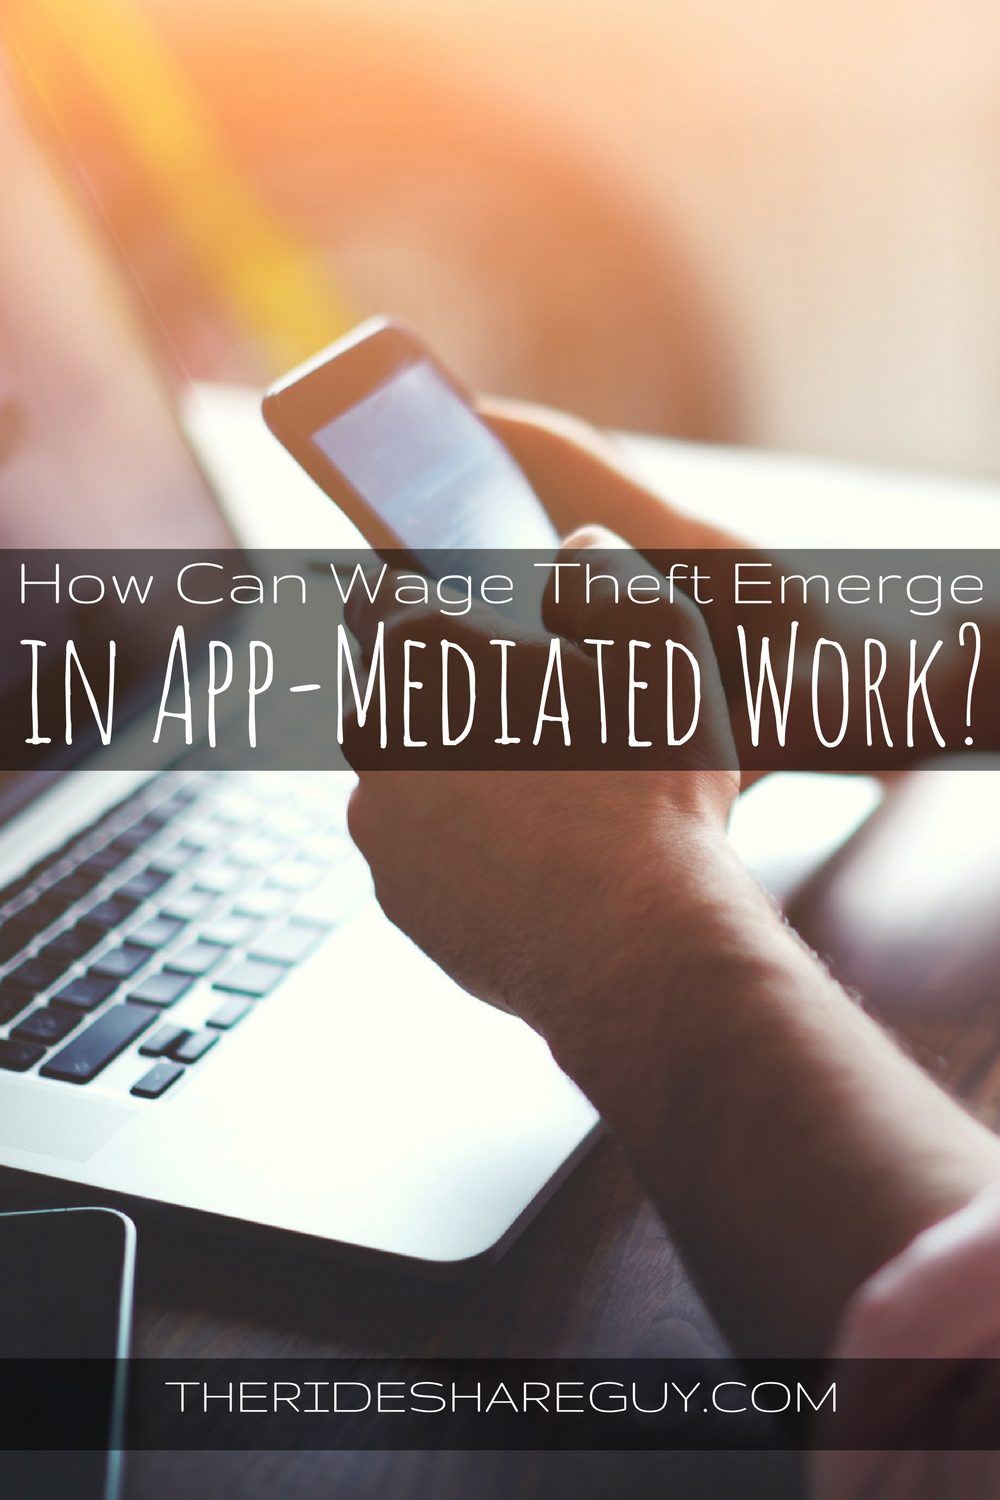 How Can Wage Theft Emerge in App-Mediated Work?